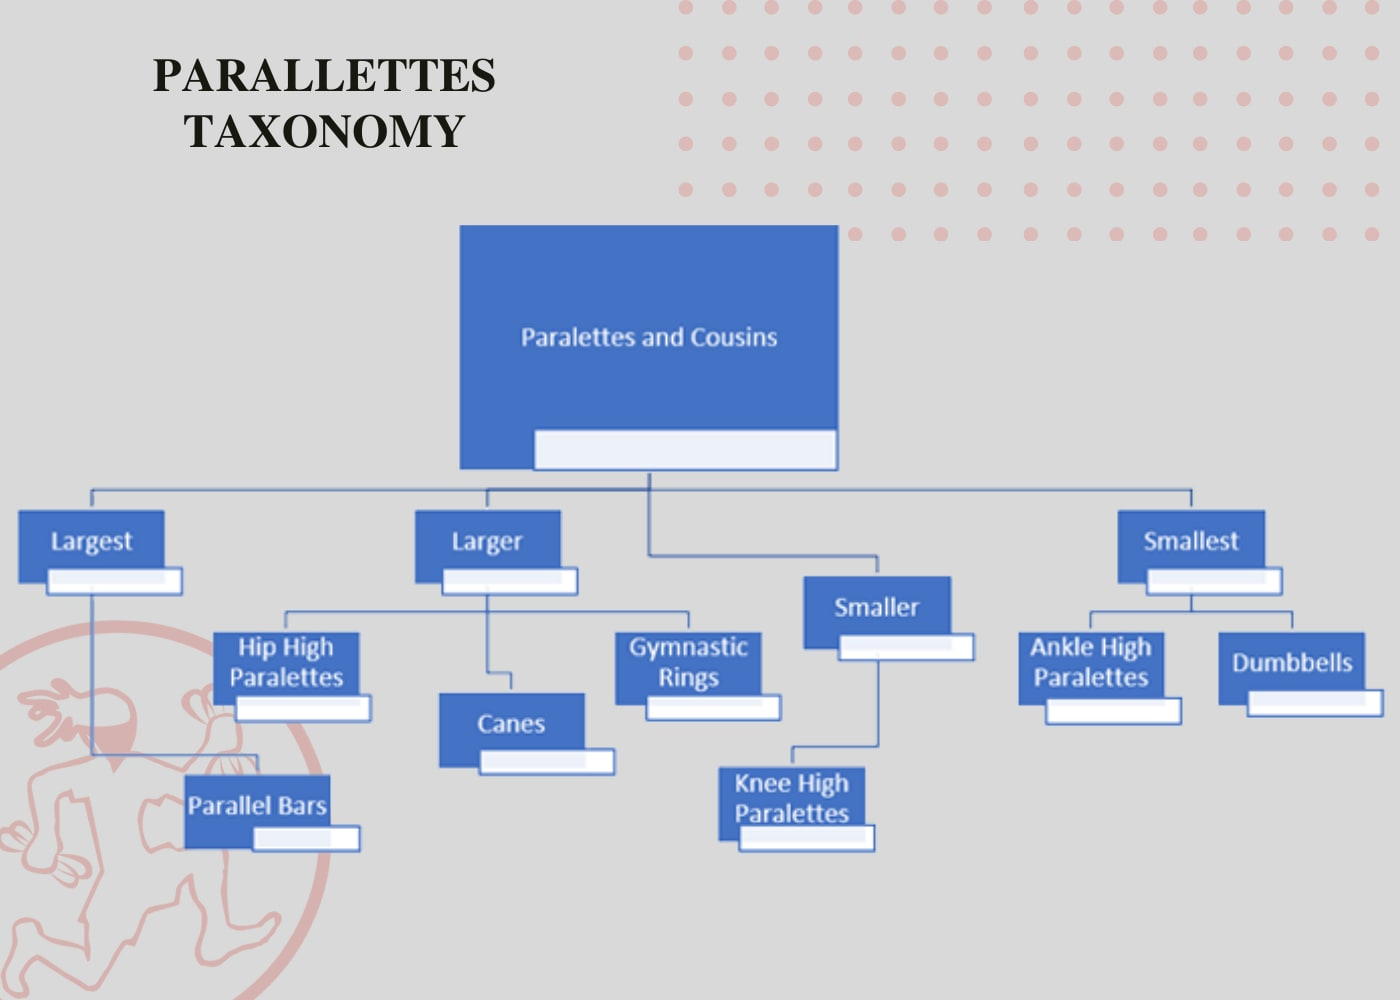 Parallettes Taxonomy